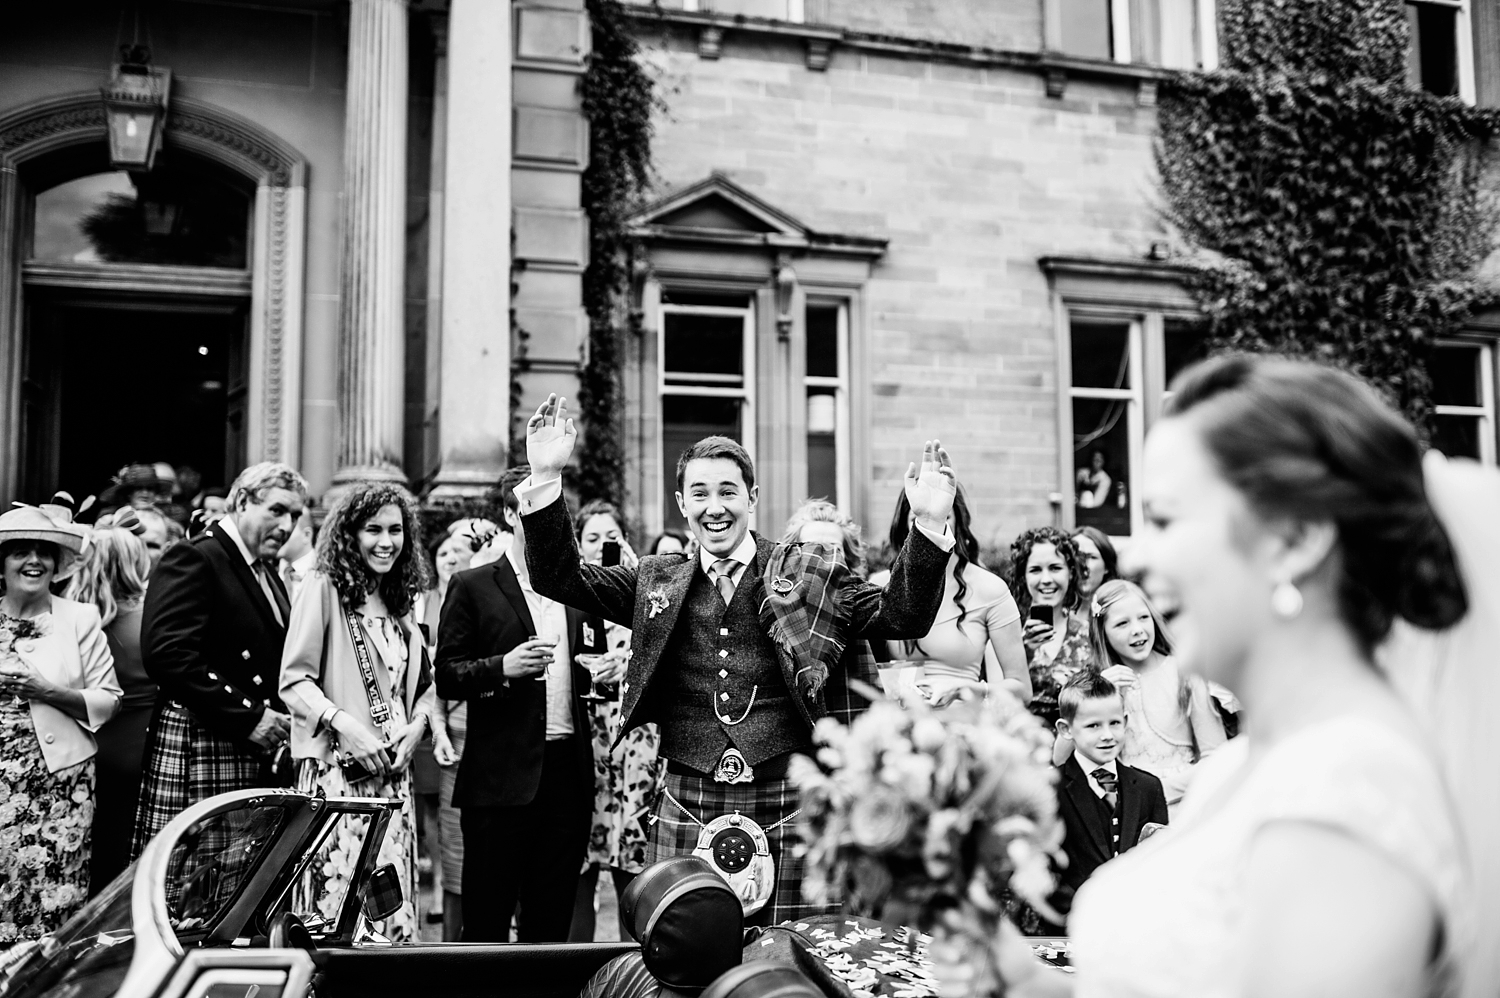 4781-lisa-devine-photography-alternative-stylish-creative-wedding-photography-glasgow-scotland-uk.JPG